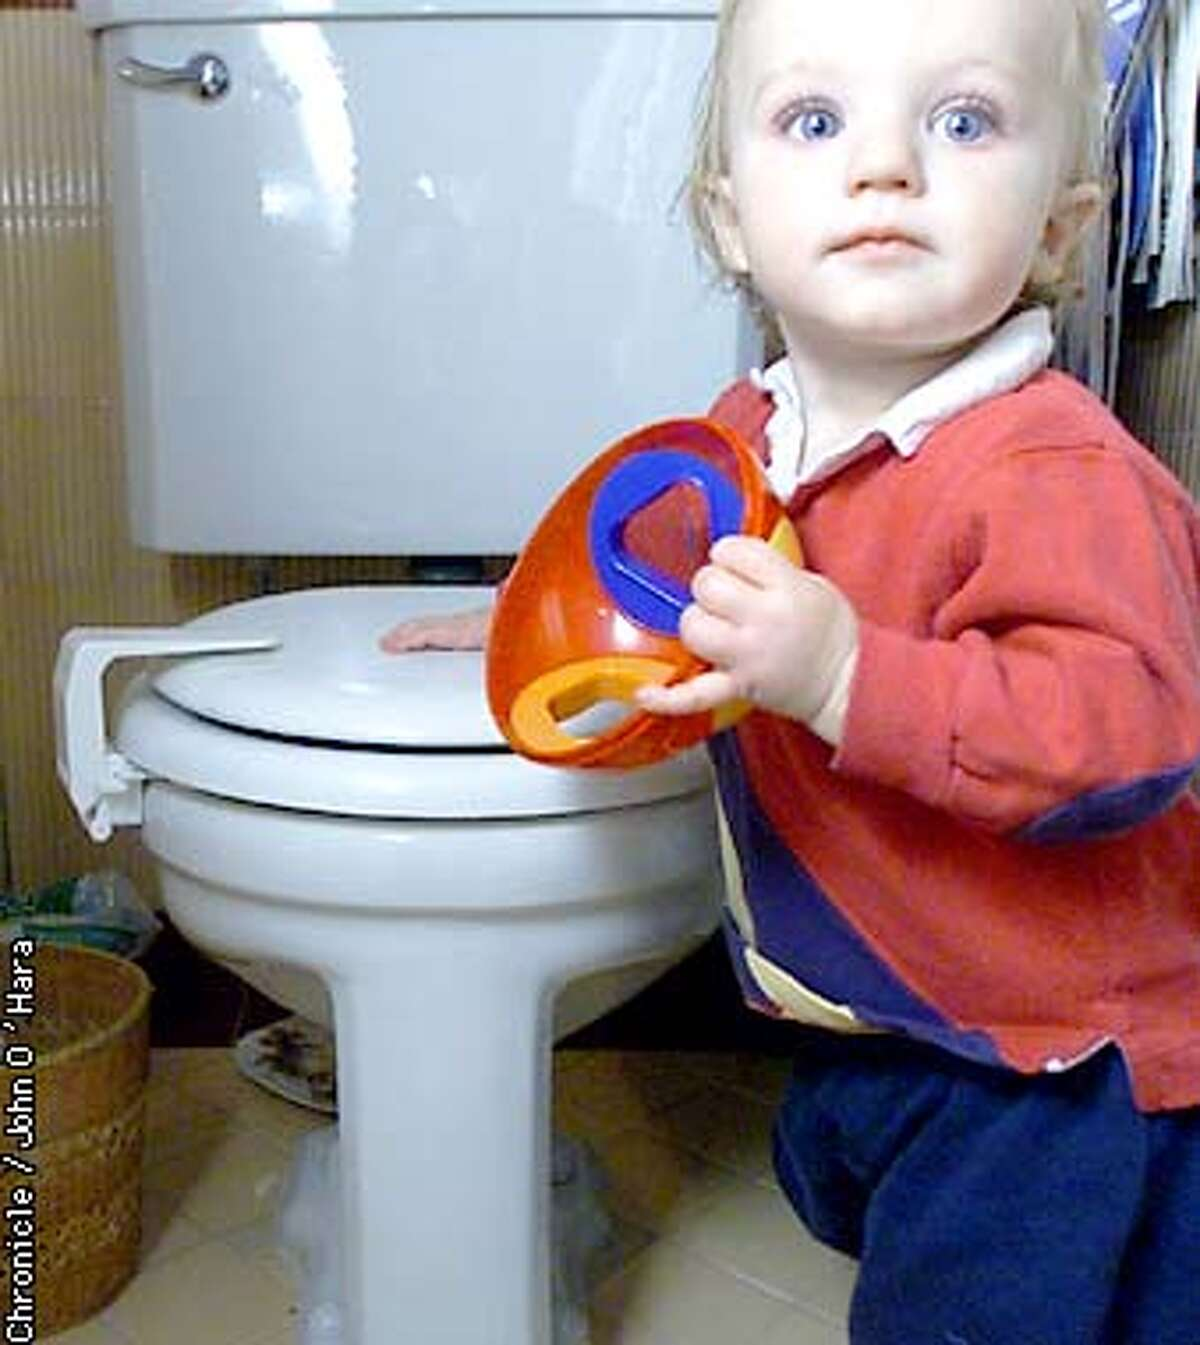 """San Francisco,CA """"Harry"""" , standing next to the childproof comode lock. A Toliet lid lock, sells for $10.99. Photo/John O'Hara"""